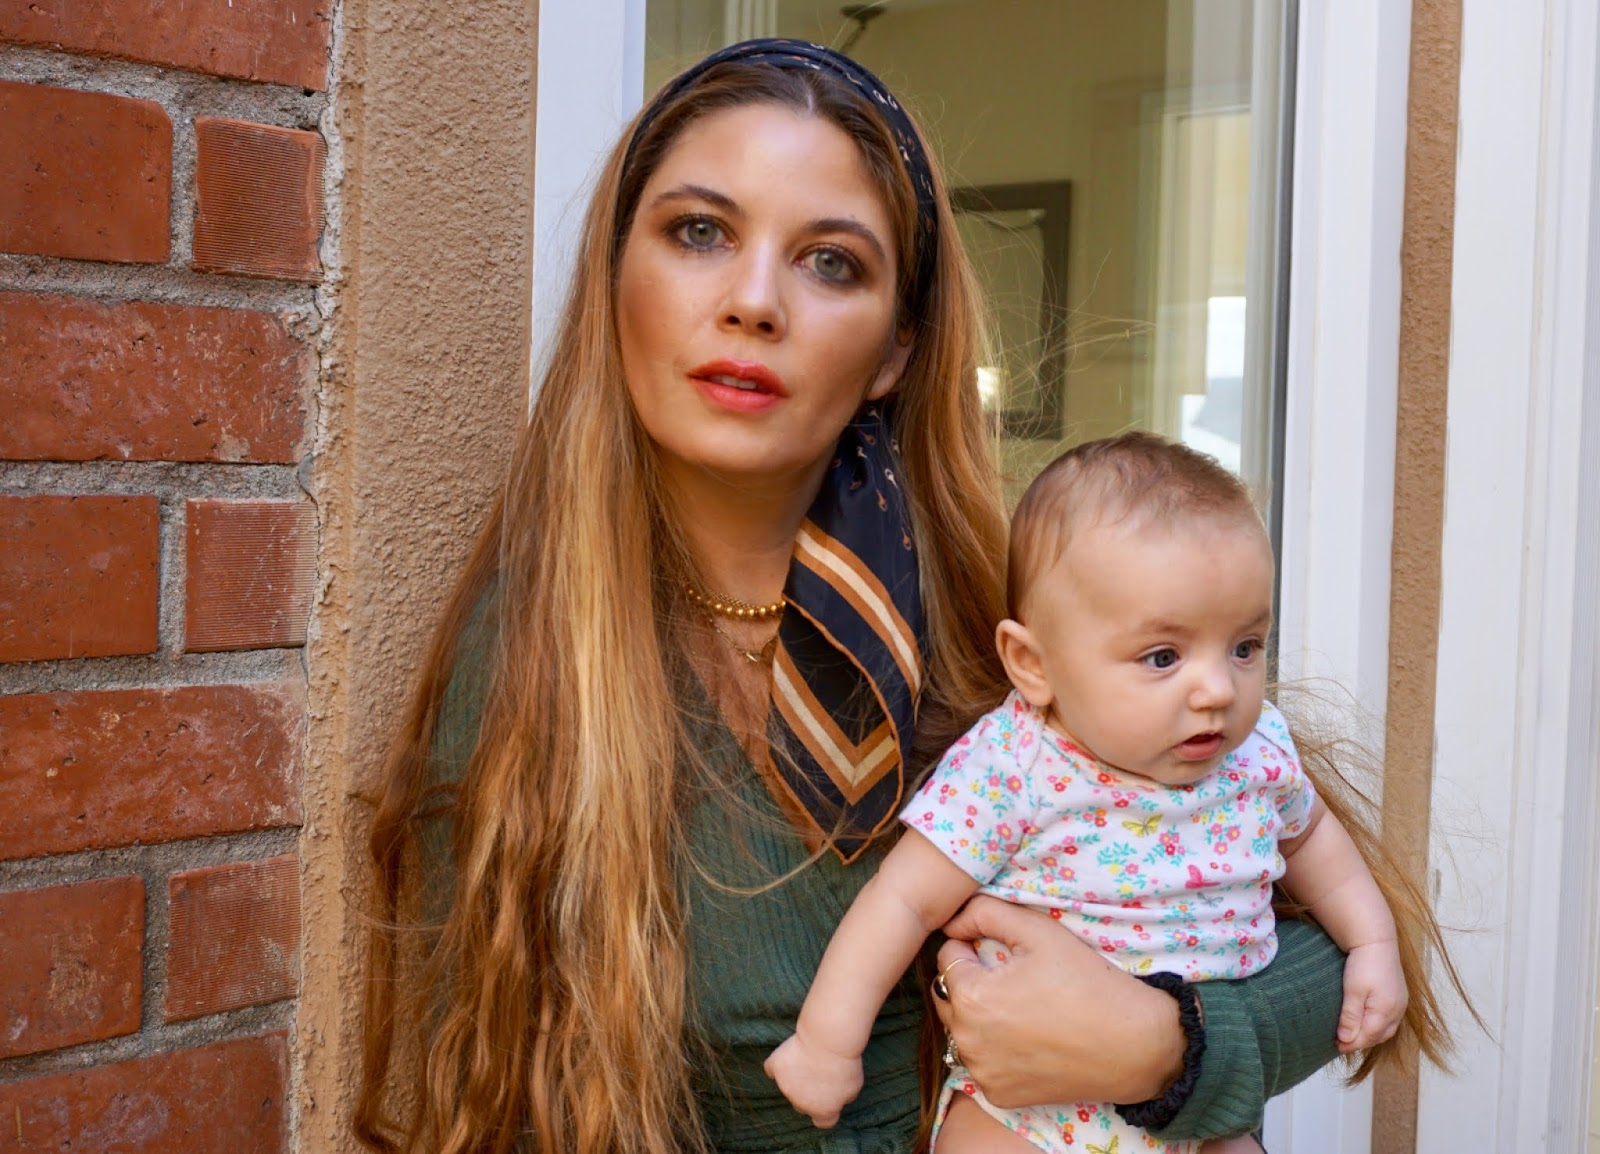 Beauty Professor By Terry Holiday 2018 Newness From Kjaer Weis A Anastasia Beverly Hills Illuminators Rivera With Precious Baby Johannahi Cannot Believe That She Is Now 4 Months Old